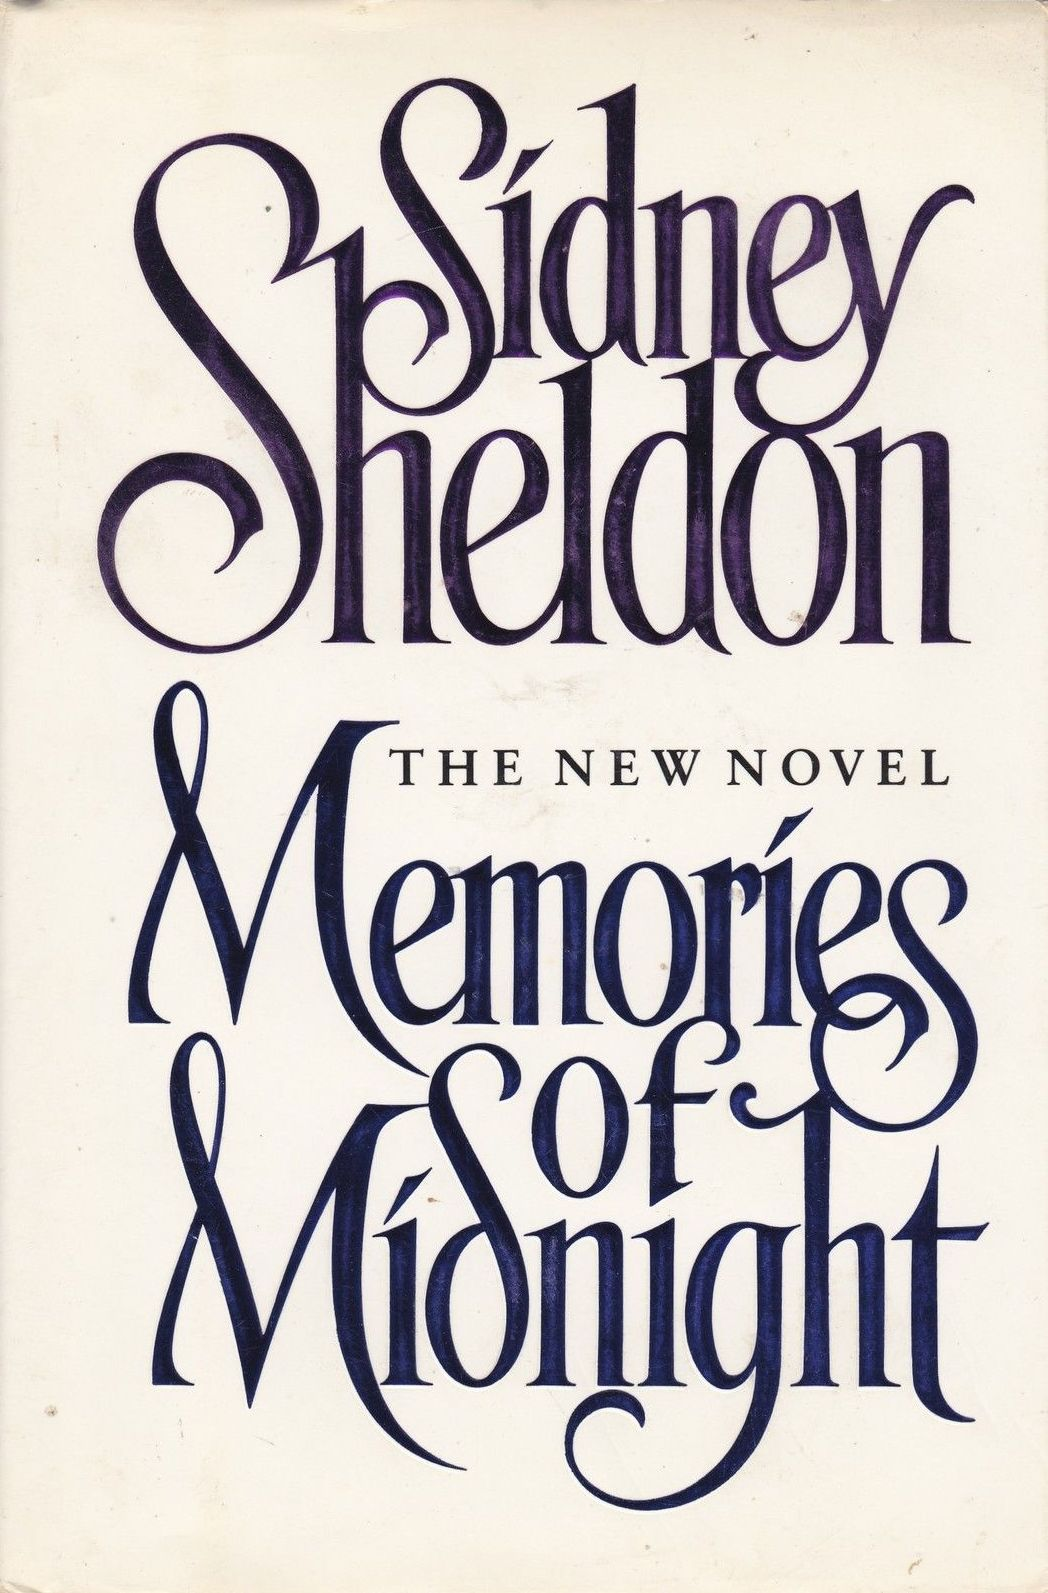 Memory epub download sidney tides sheldon the of